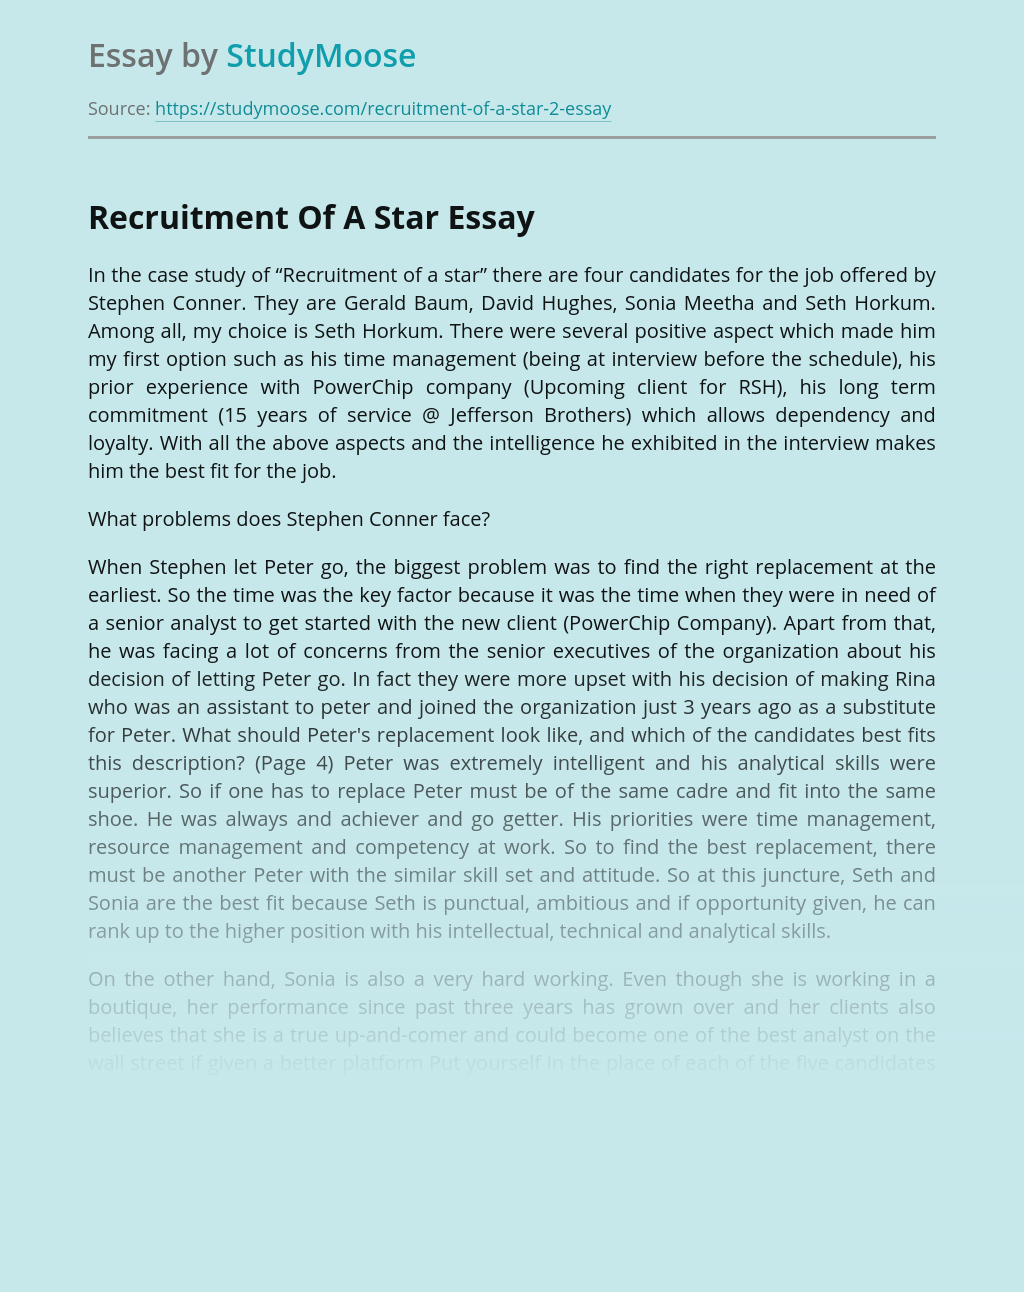 Case Study Of Recruitment Of A Star